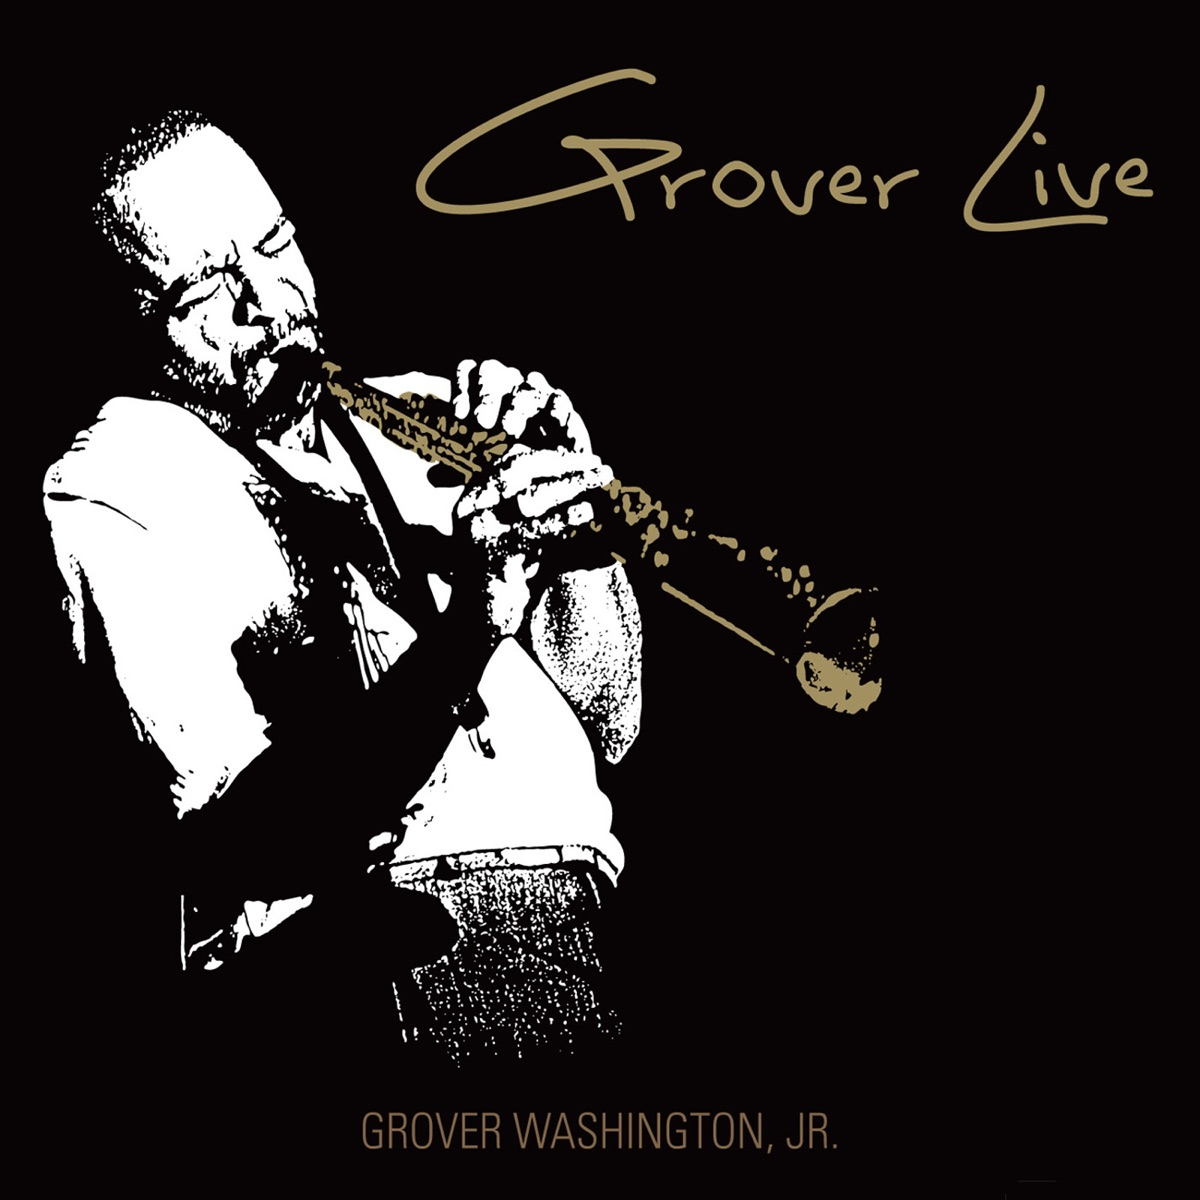 Grover Live Album Cover By Grover Washington Jr